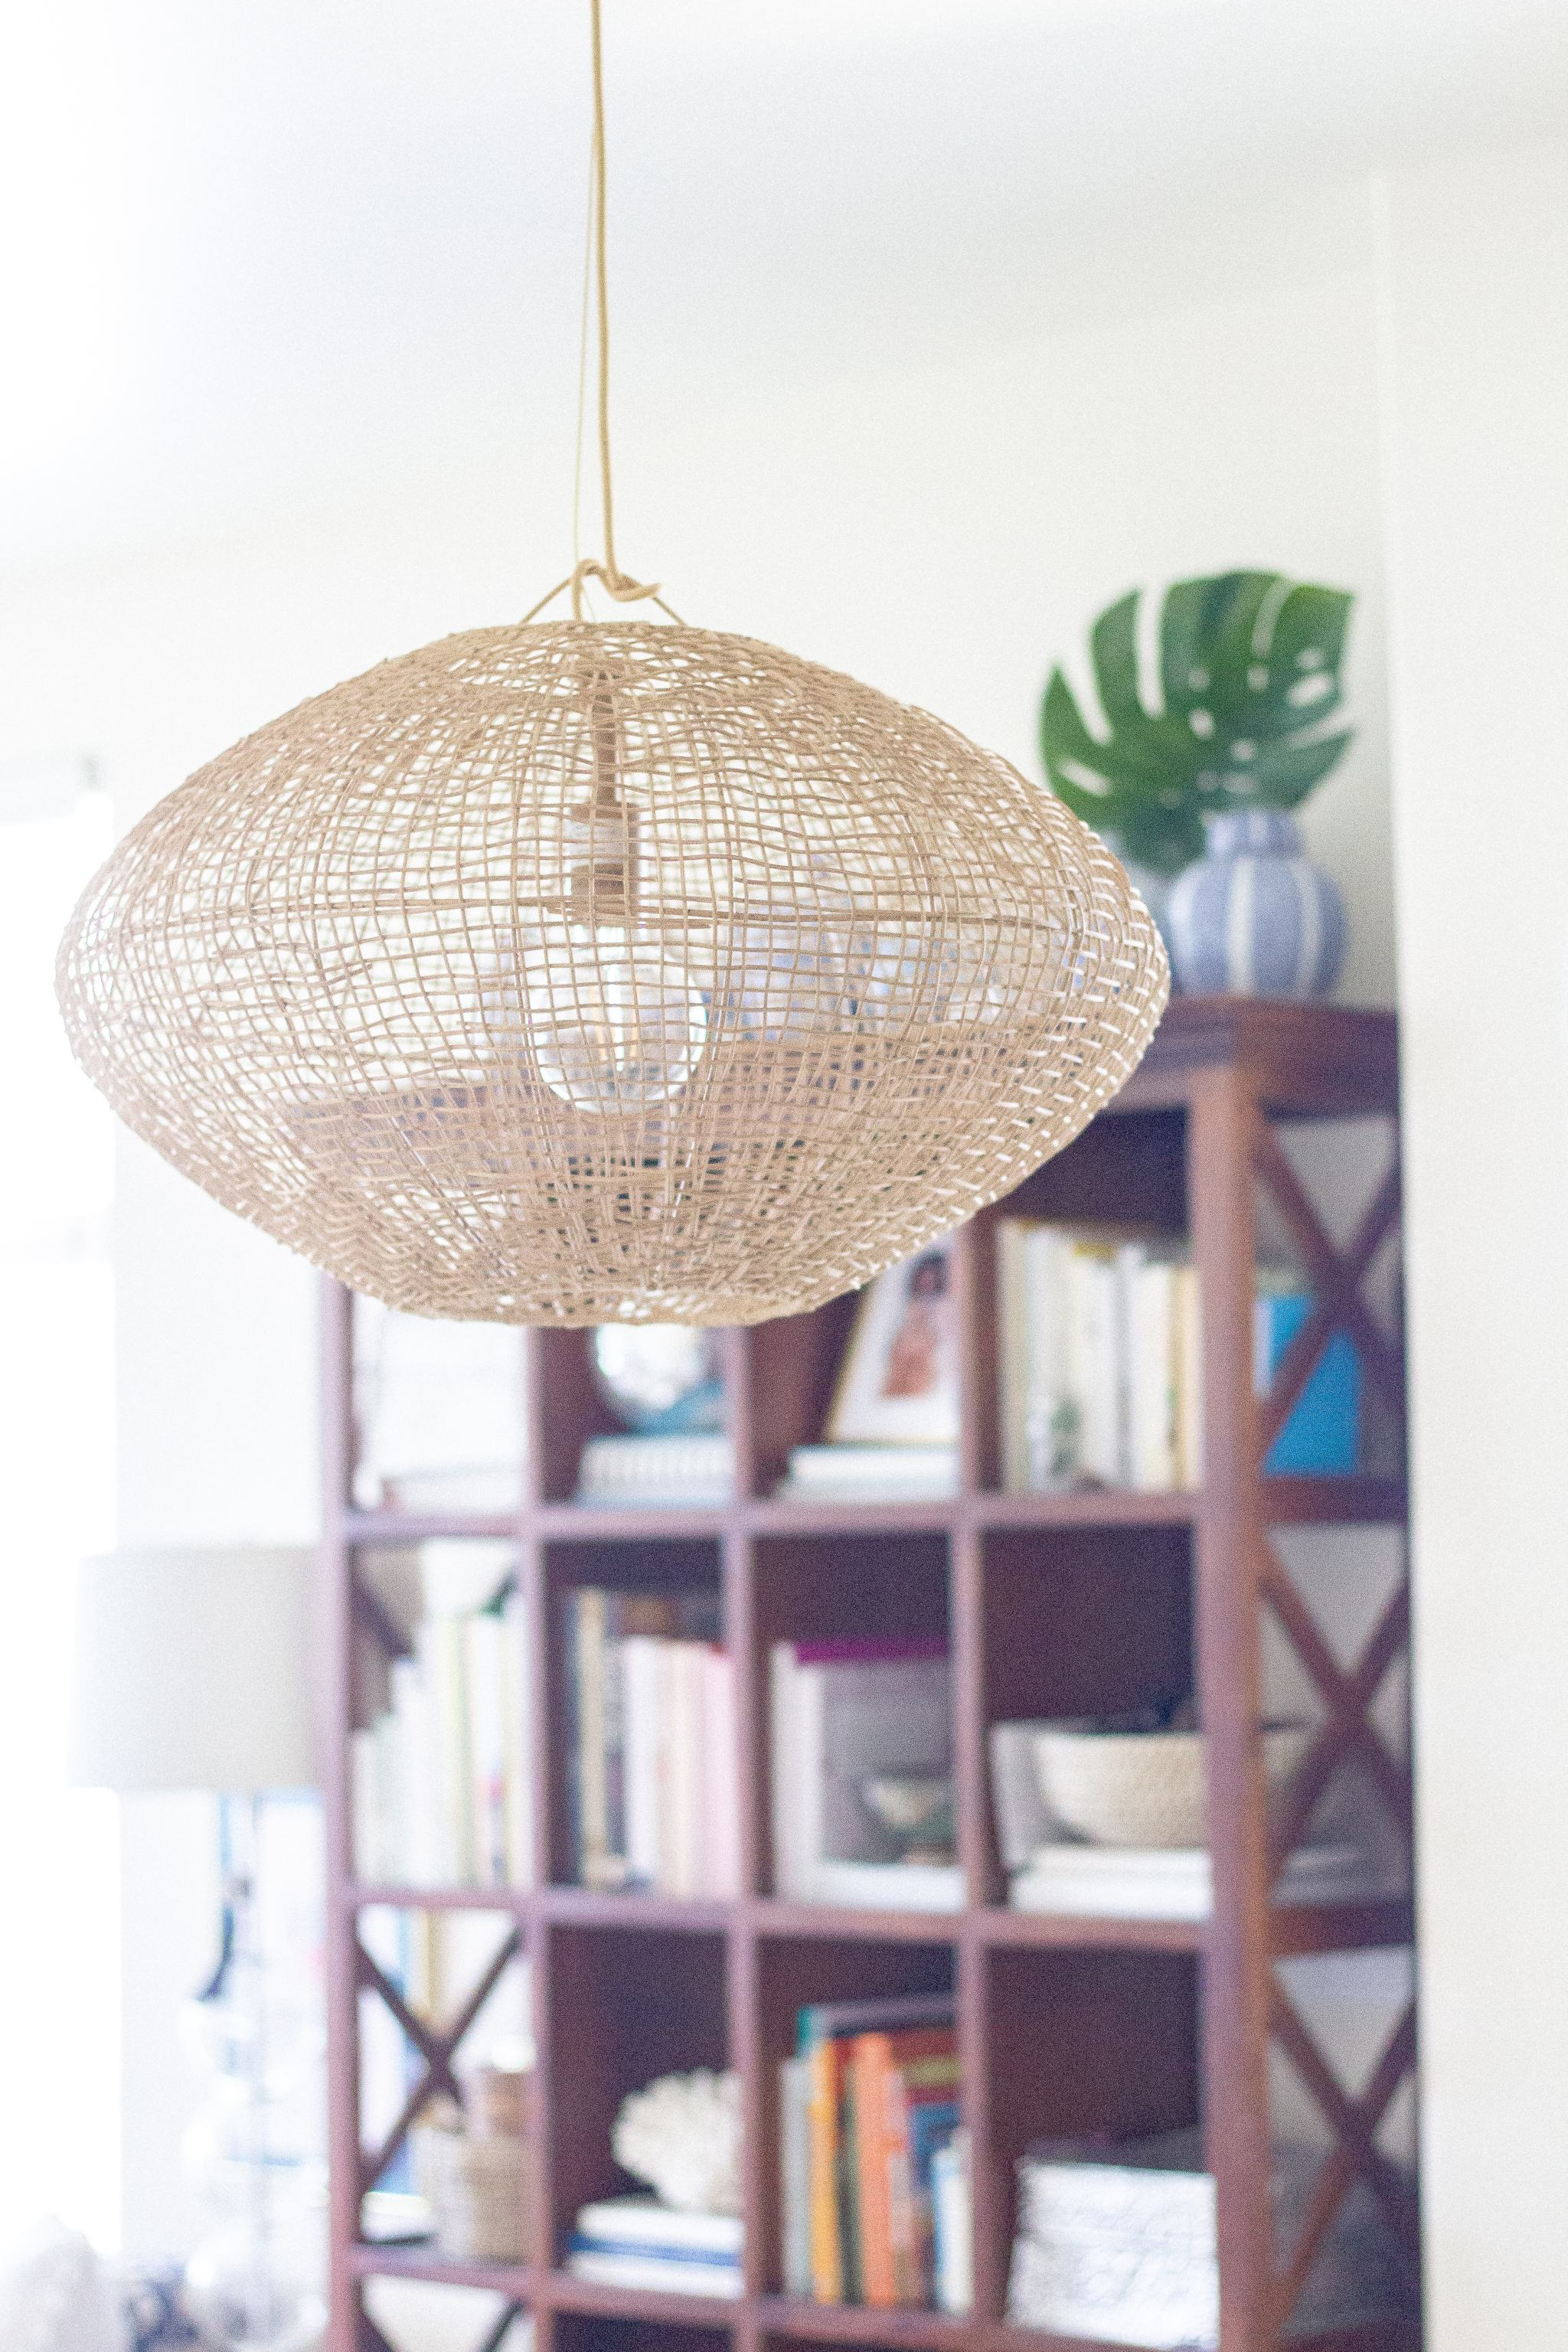 woven chandelier - rattan chandelier - rattan light - rattan lamp - project 62 light - project 62 leanne ford lamp - woven hanging lamp